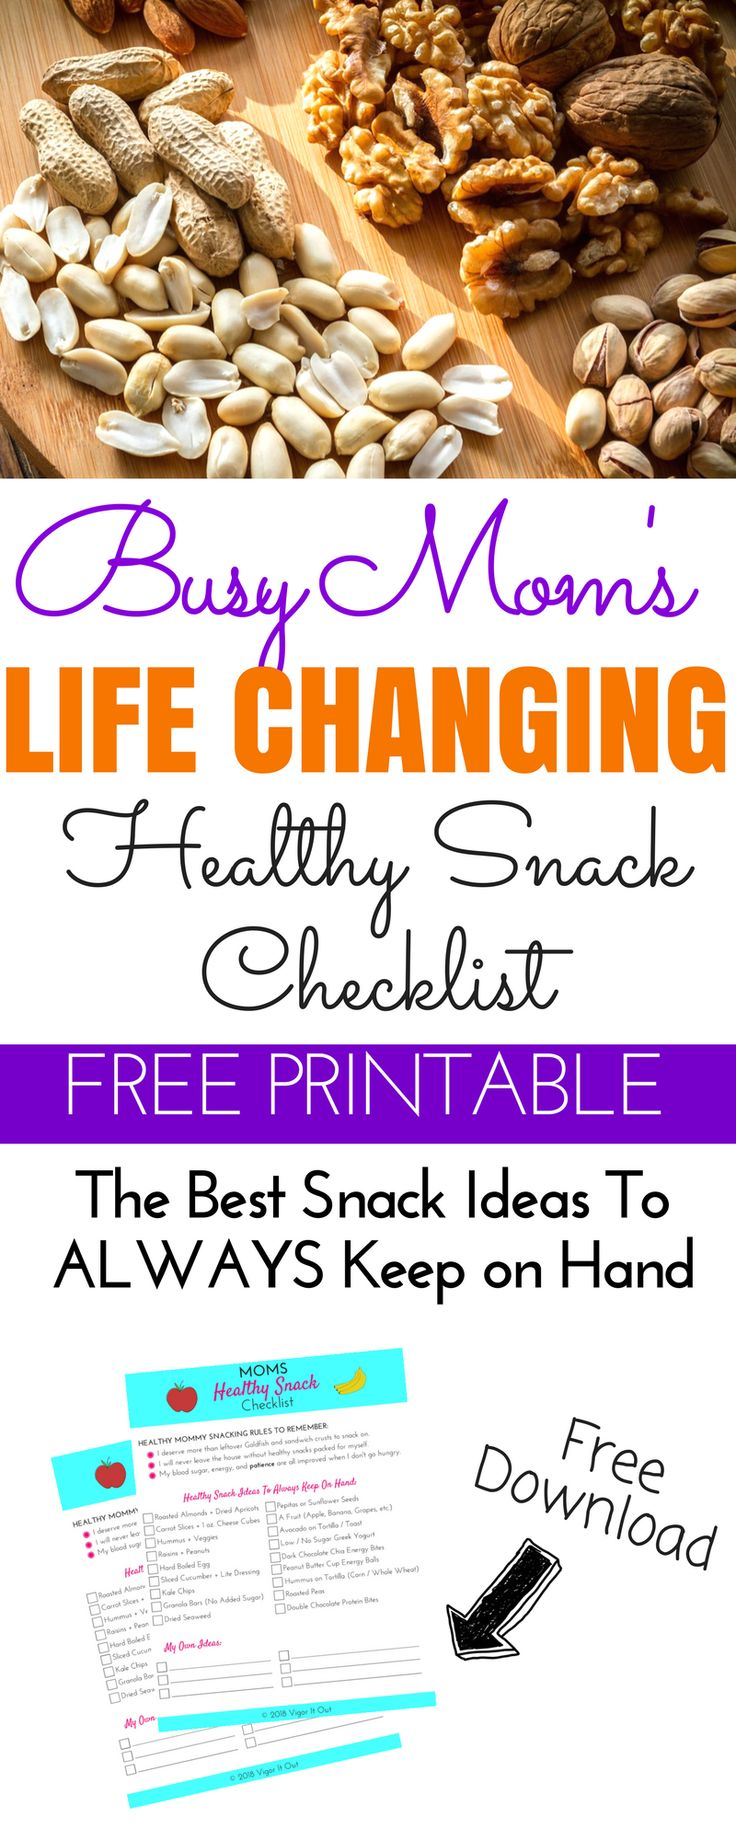 These are the perfect way healthy snacks for a mom on the go! Always keeping protein packed clean eating snacks available is essential for weightloss. These quick snack ideas and recipes are perfect for busy moms, for work, for kids, and for athletes! #healthysnacks #healthyrecipes #cleaneatingrecipes